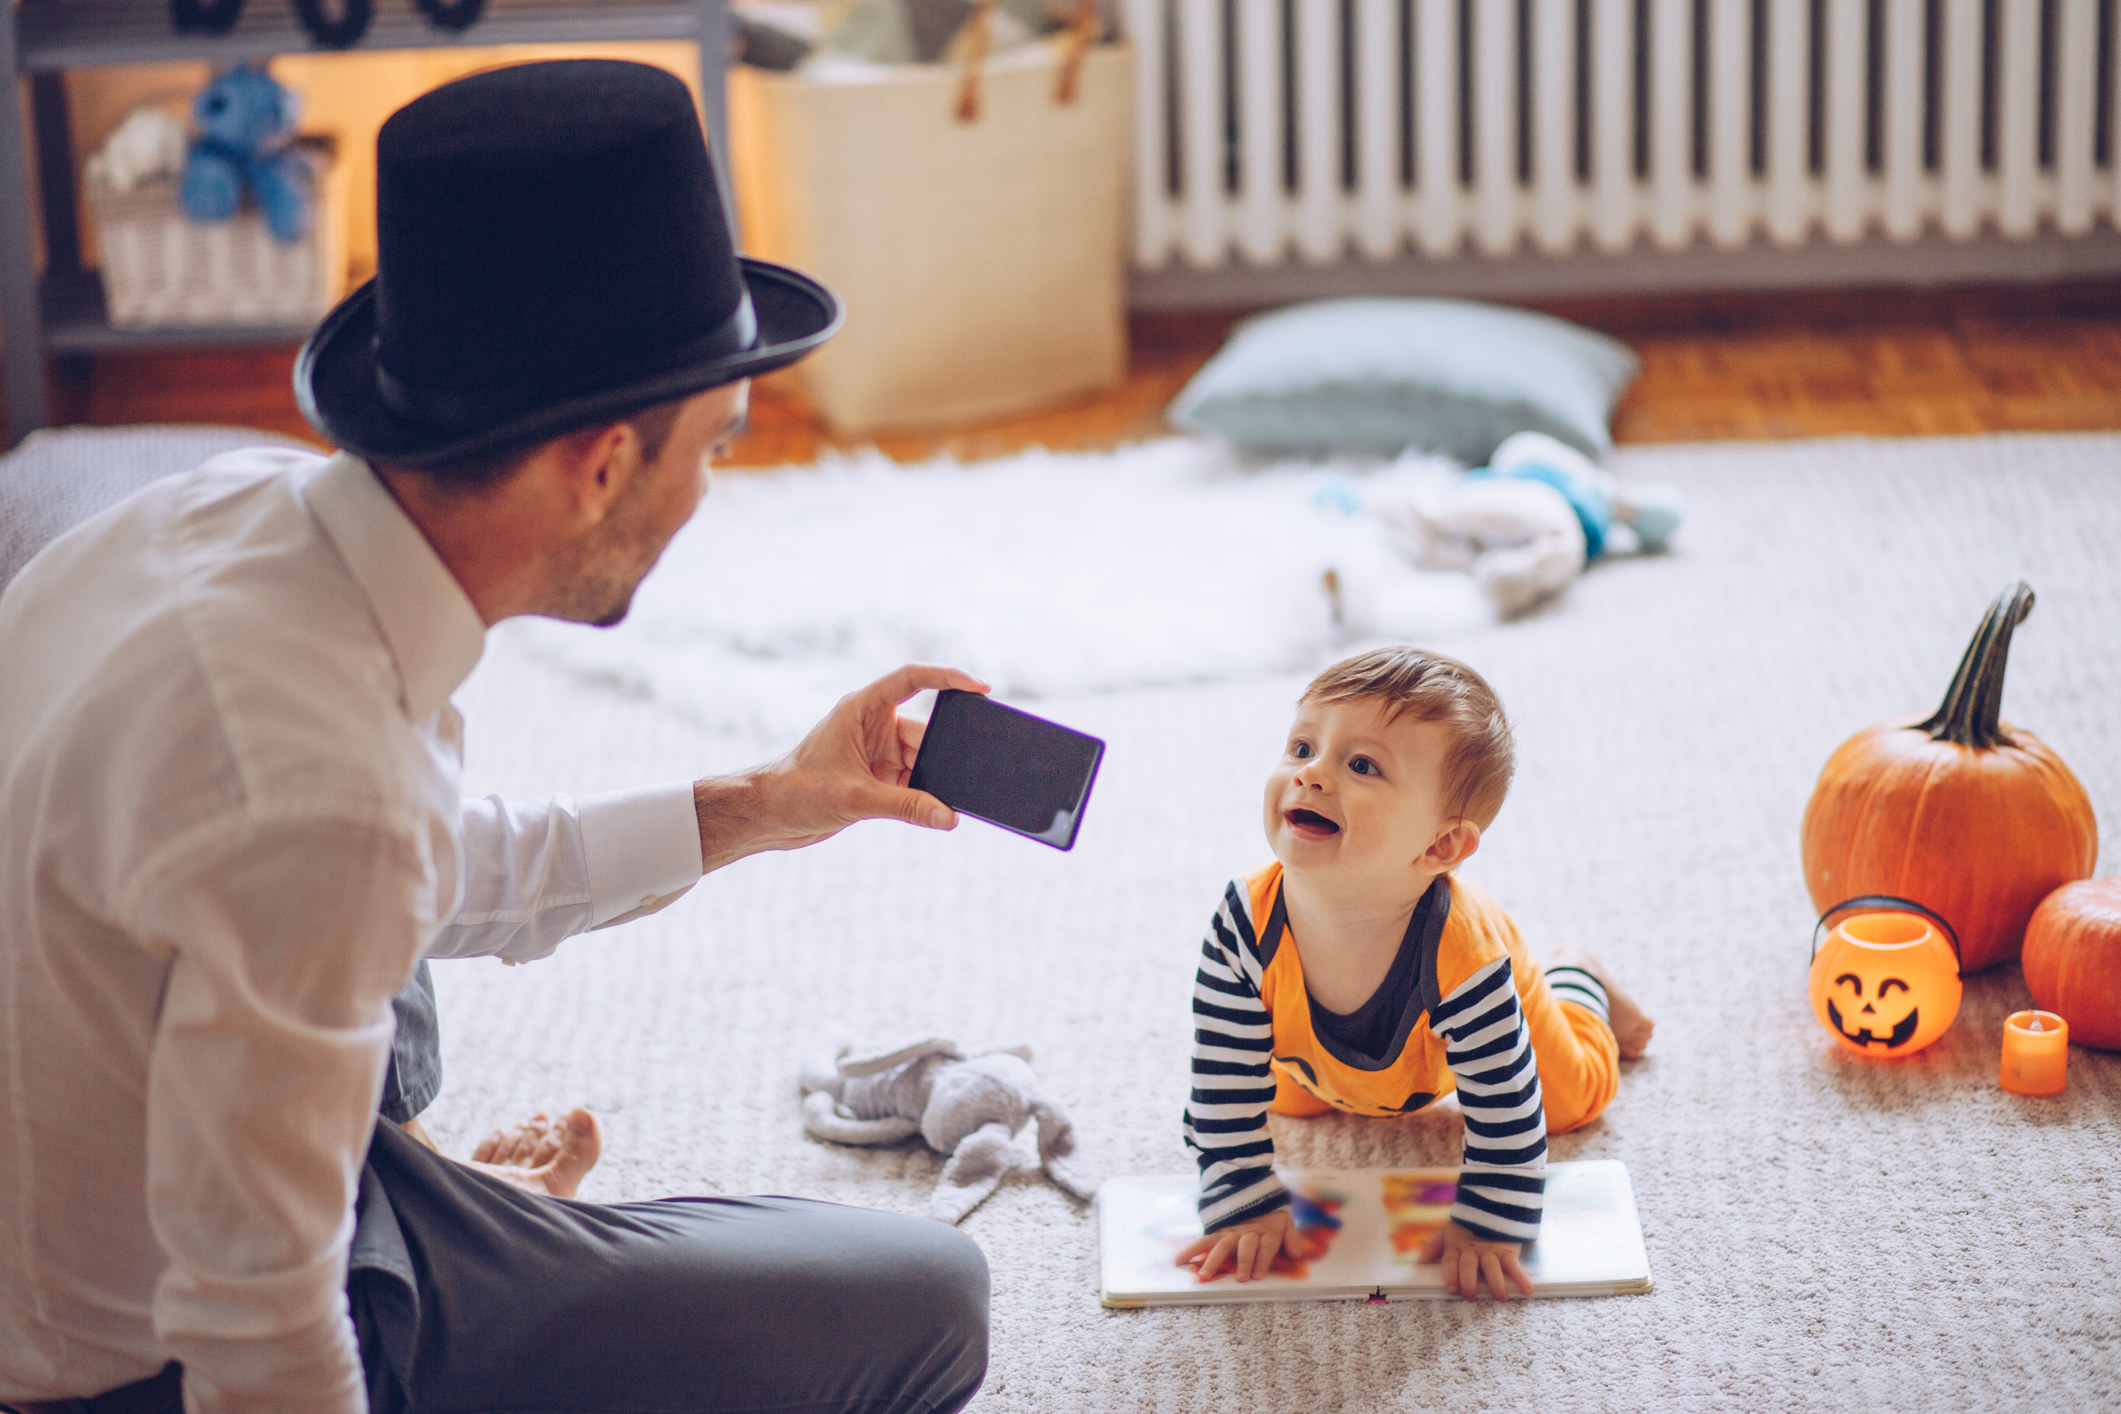 A father taking a picture of his baby for Halloween.